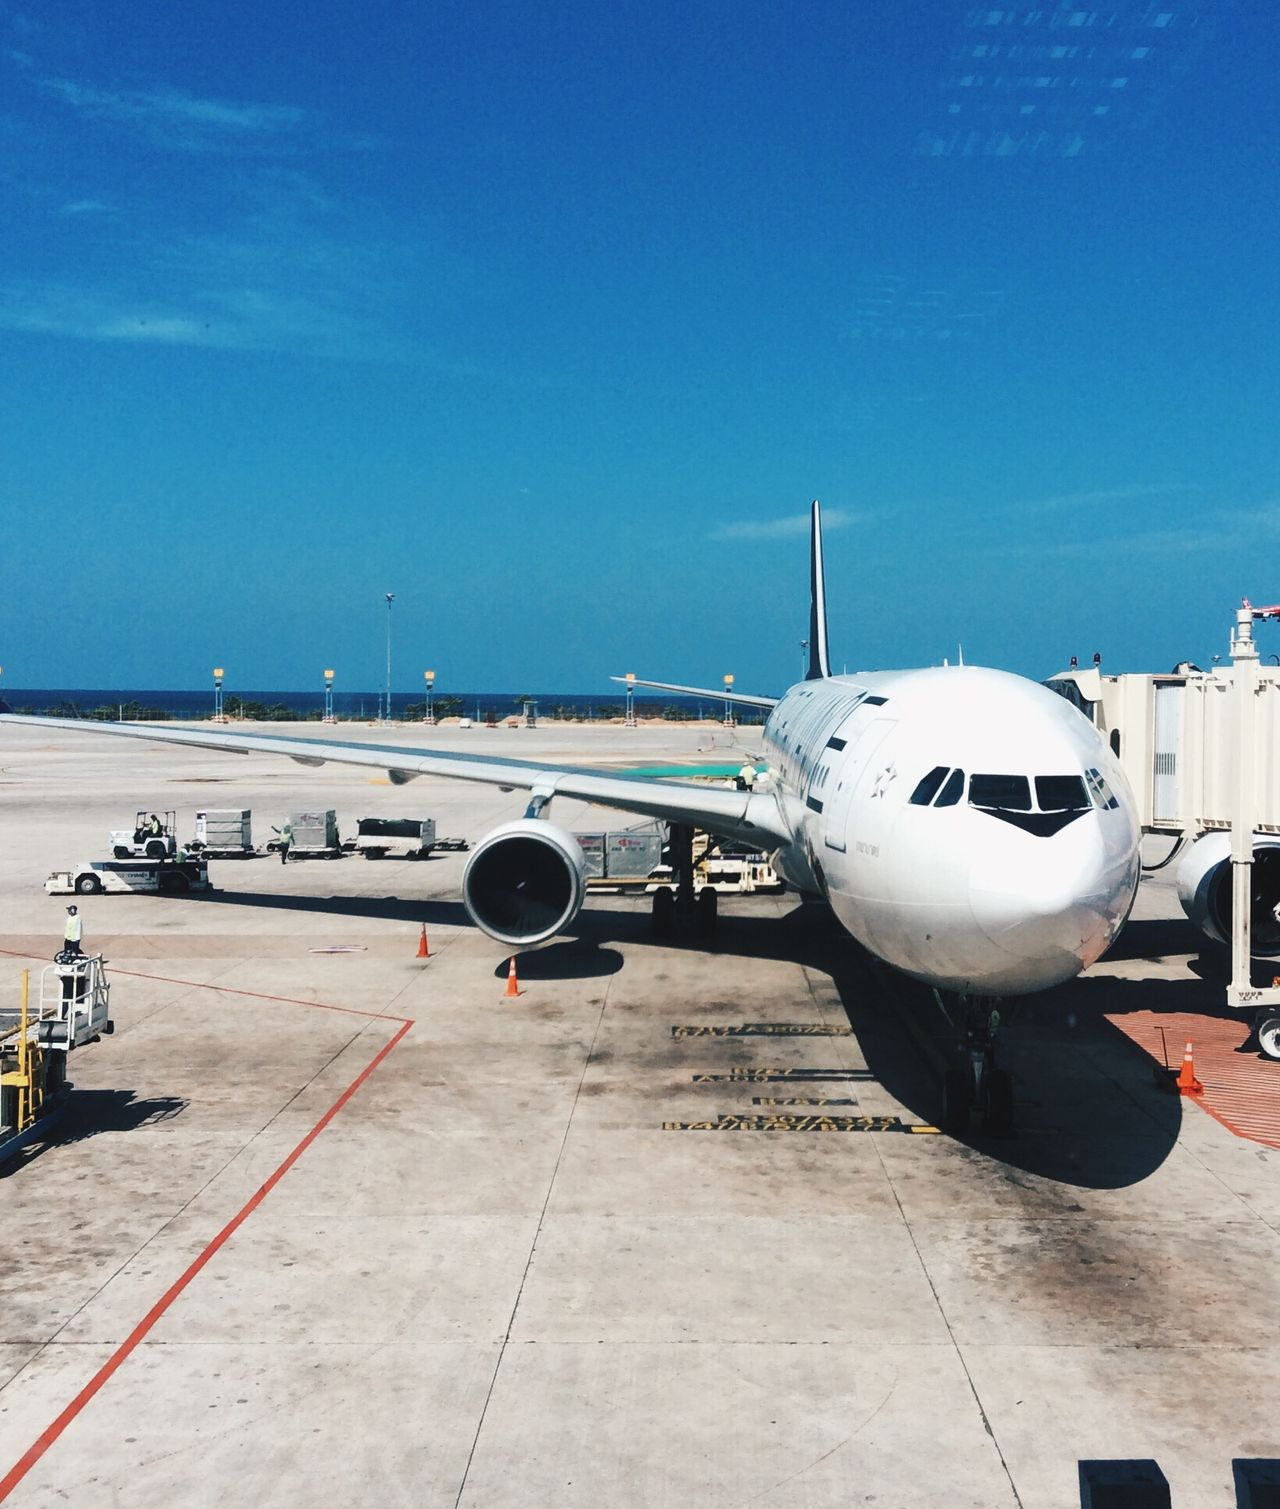 Phuket International Airport, Thailand Airport Plane Starting A Trip On A Holiday Thailand Catching A Flight Vacation Time Summer Journey Flight